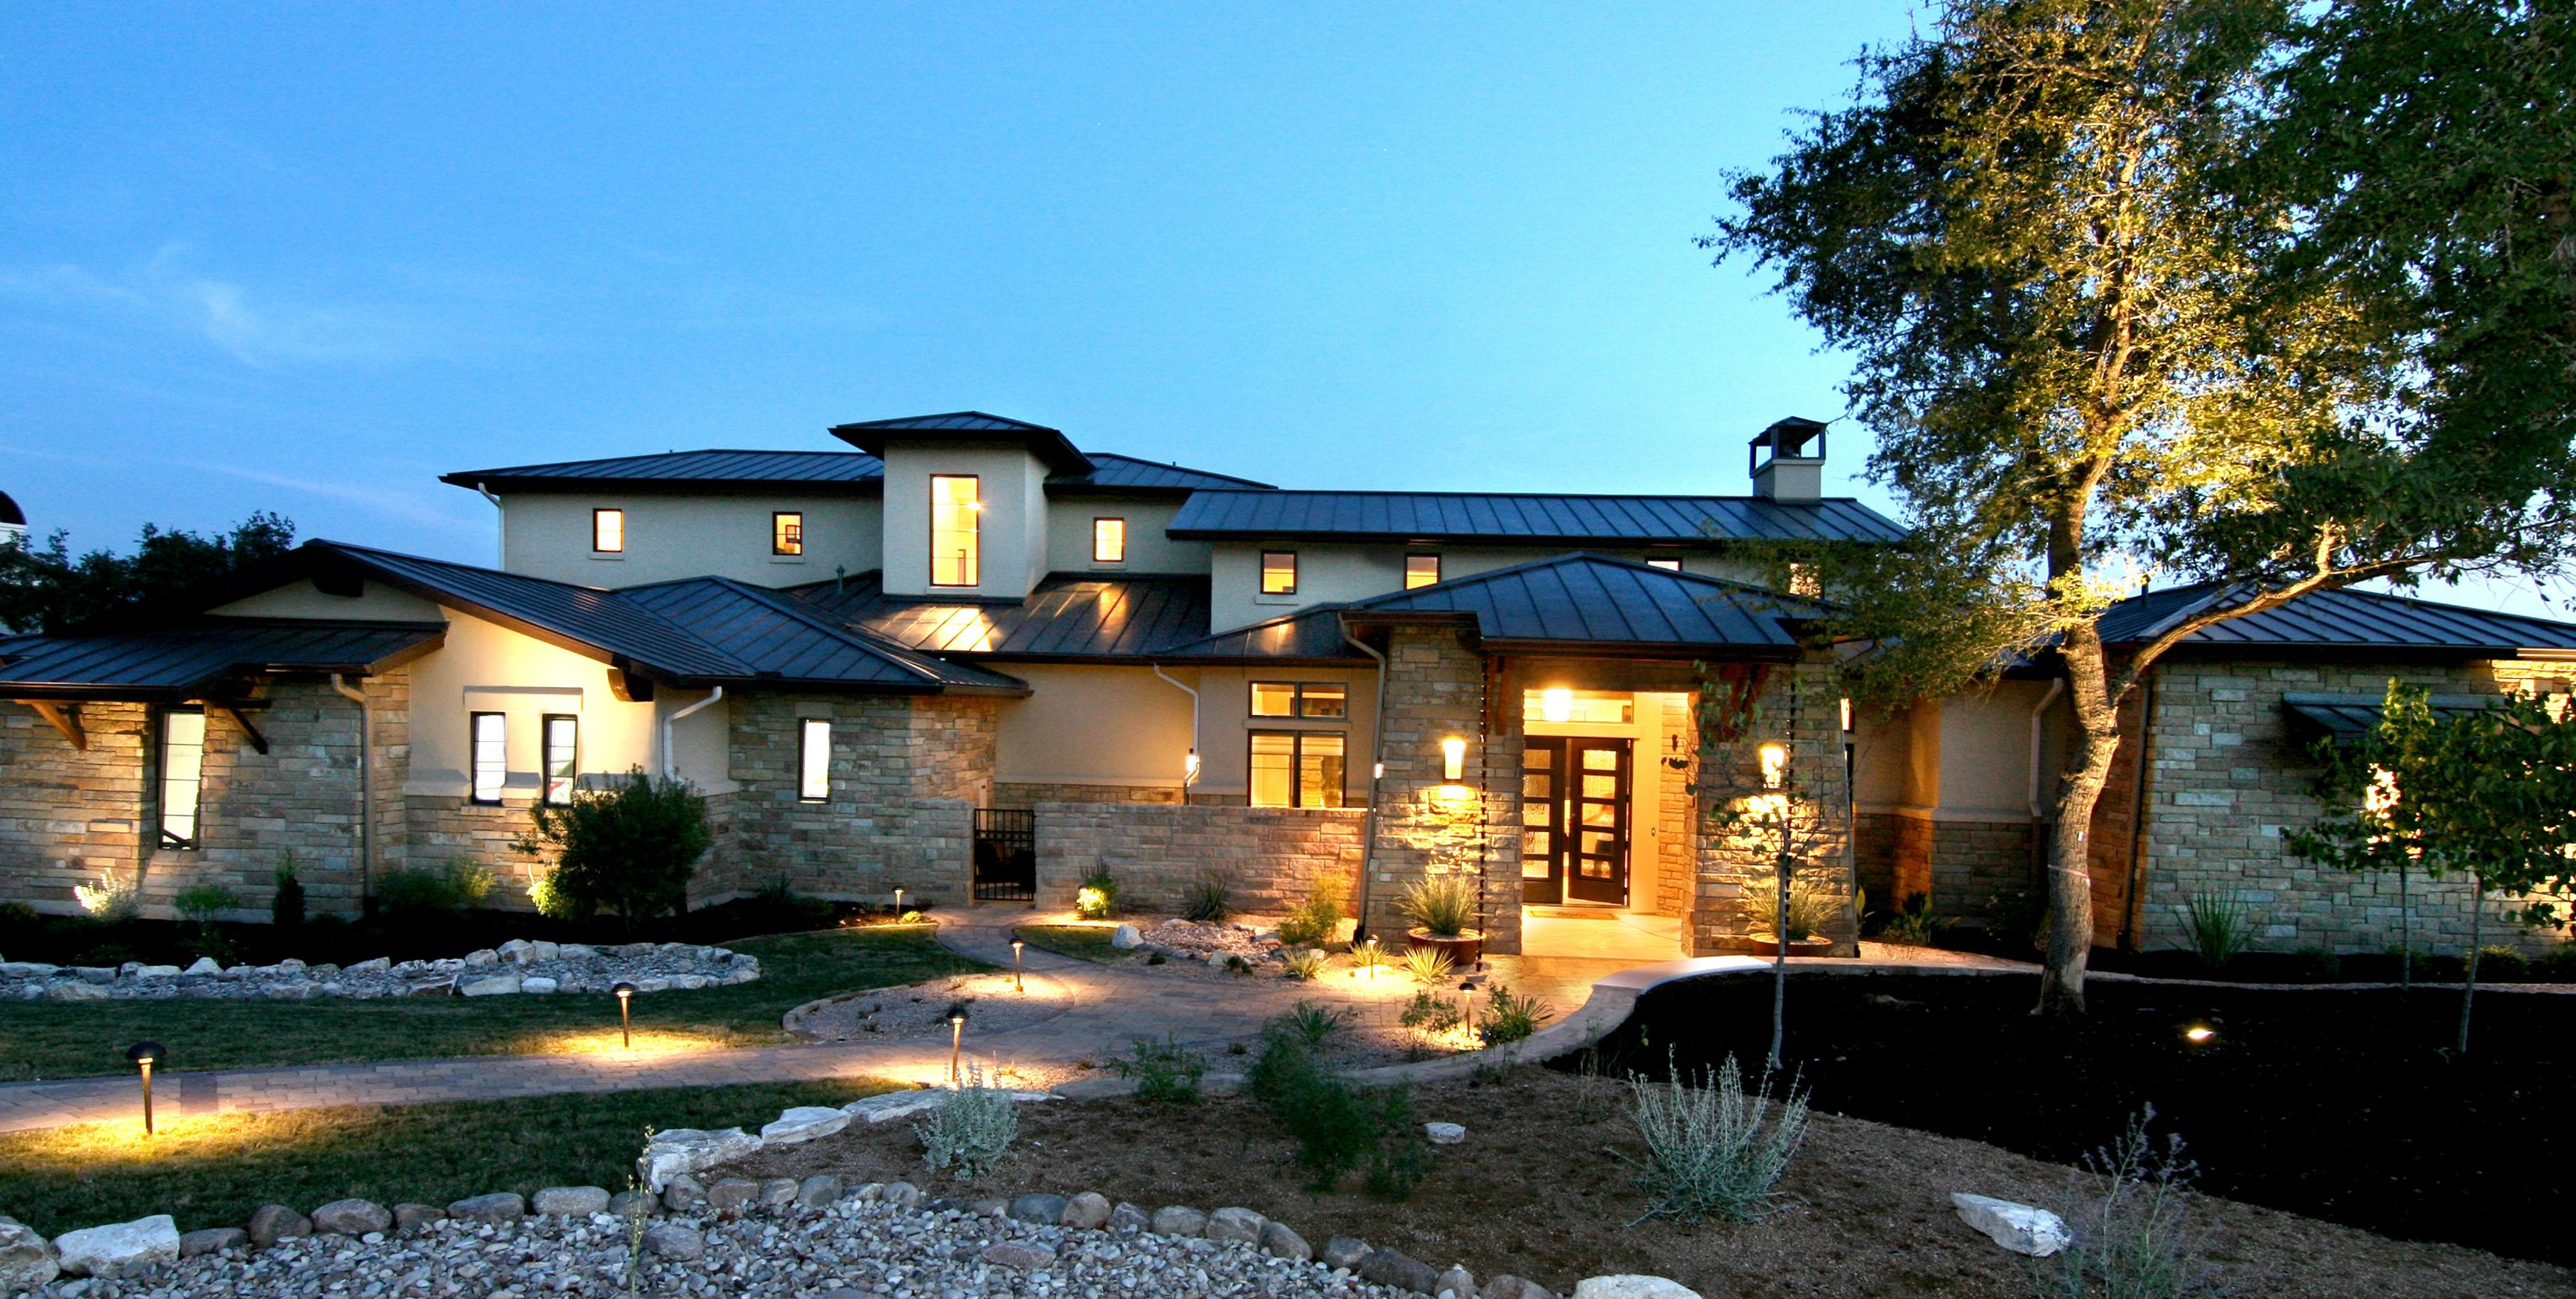 Texas Hill Country Stone And Siding Home   Bing Images